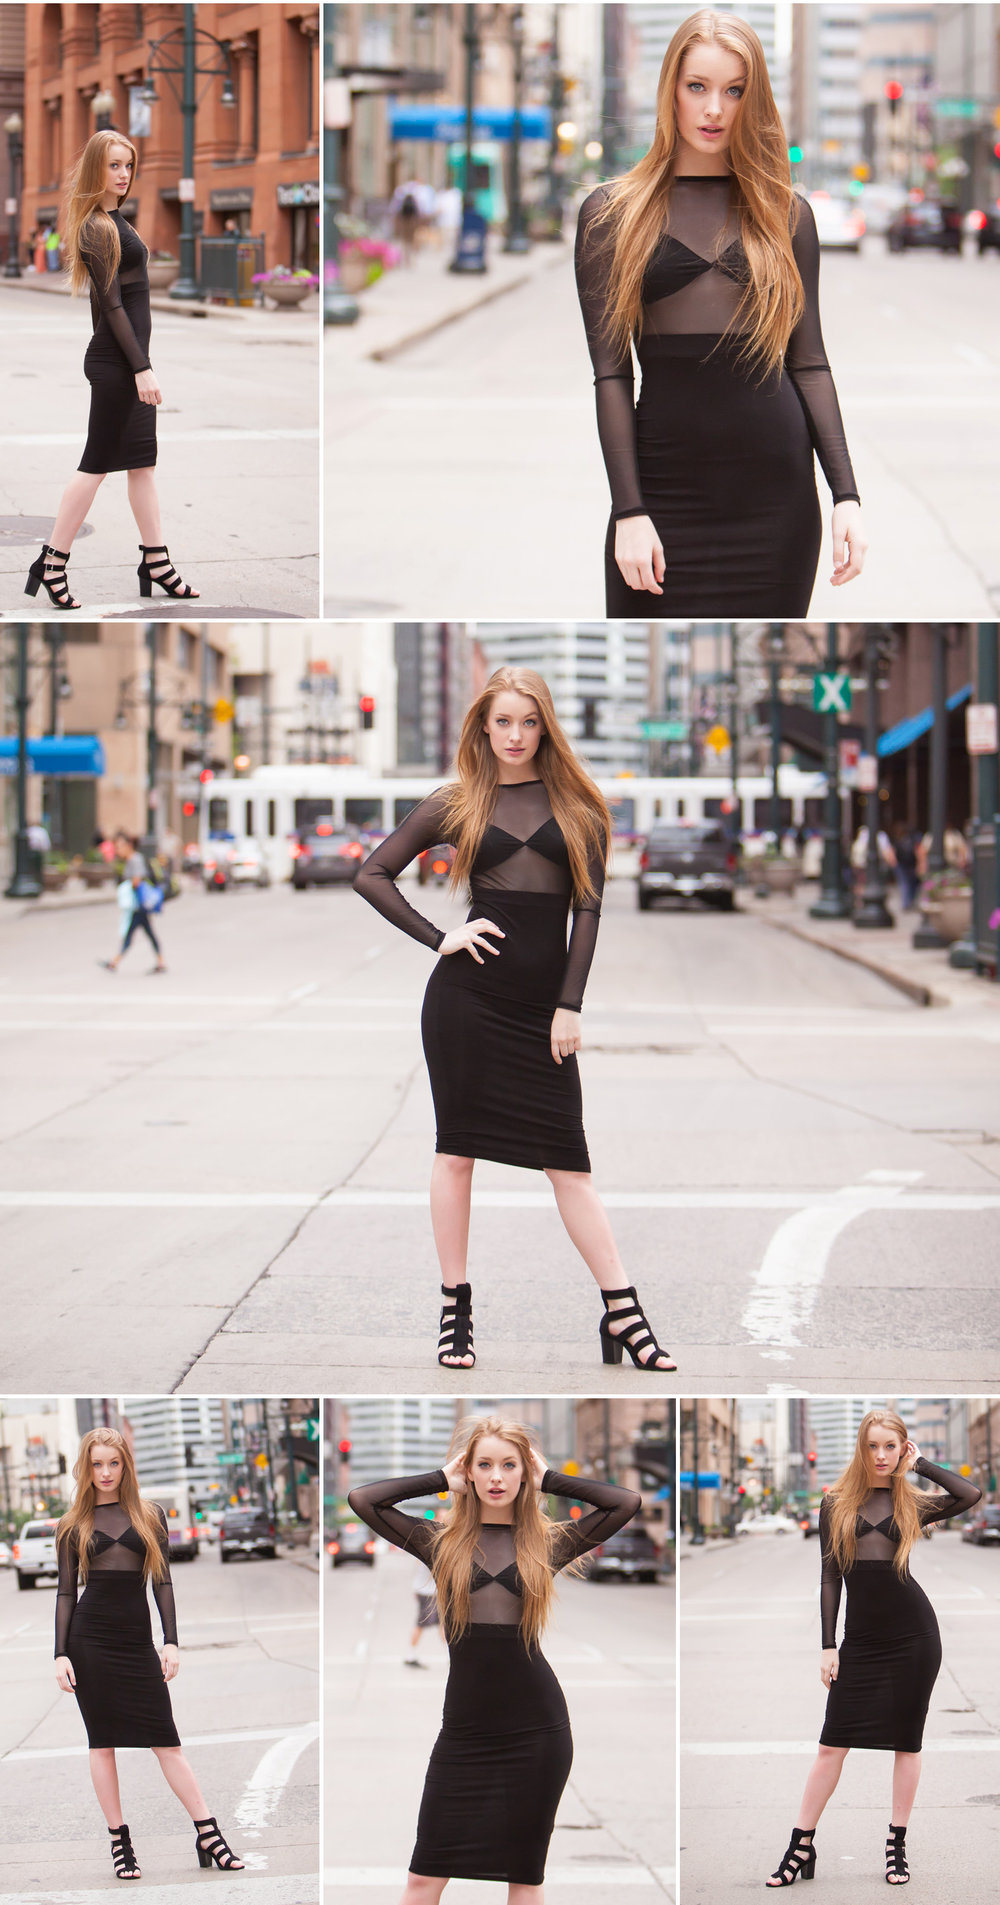 Little Black Dress Fashion Portraits in Denver